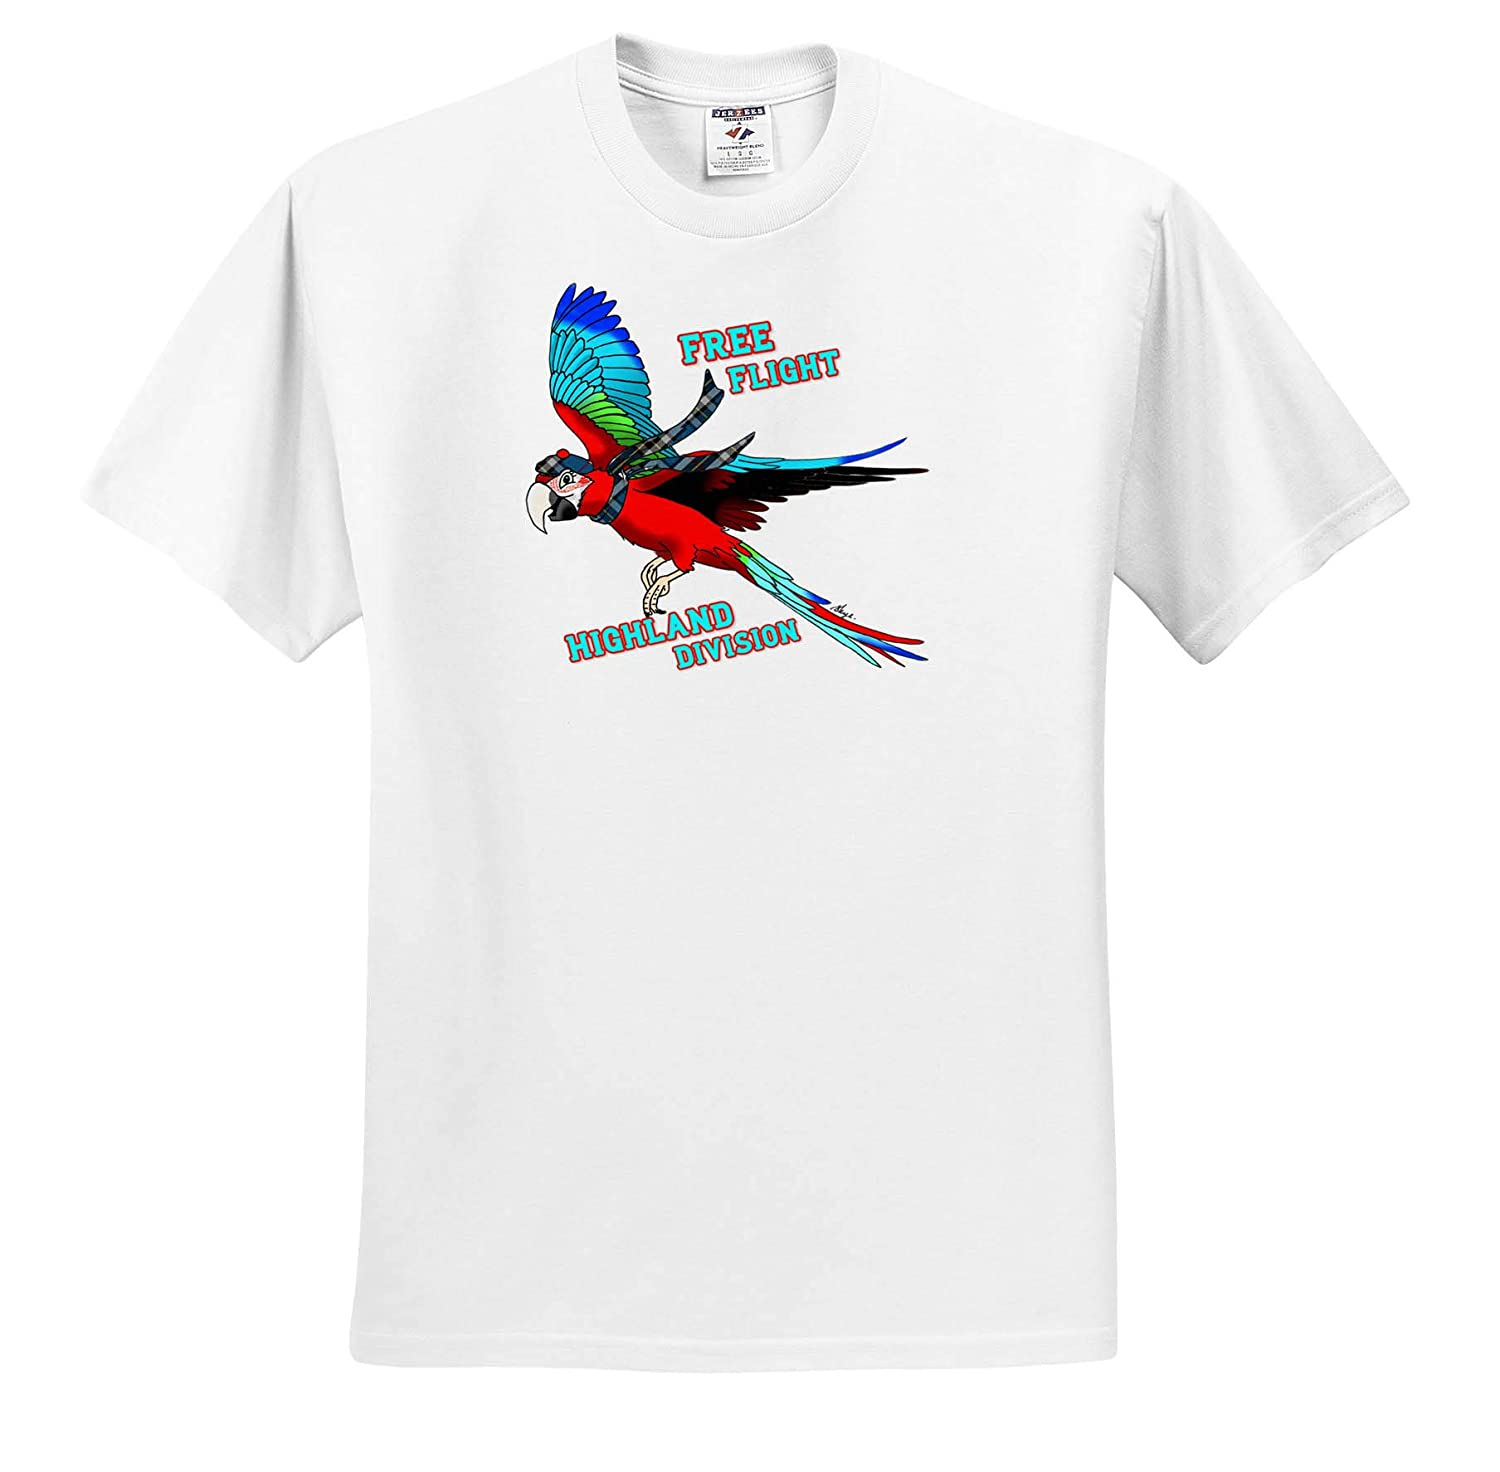 ts/_320538 Adult T-Shirt XL 3dRose Skye Elizabeth Designs Free Flight Highland Division Scottish Macaw